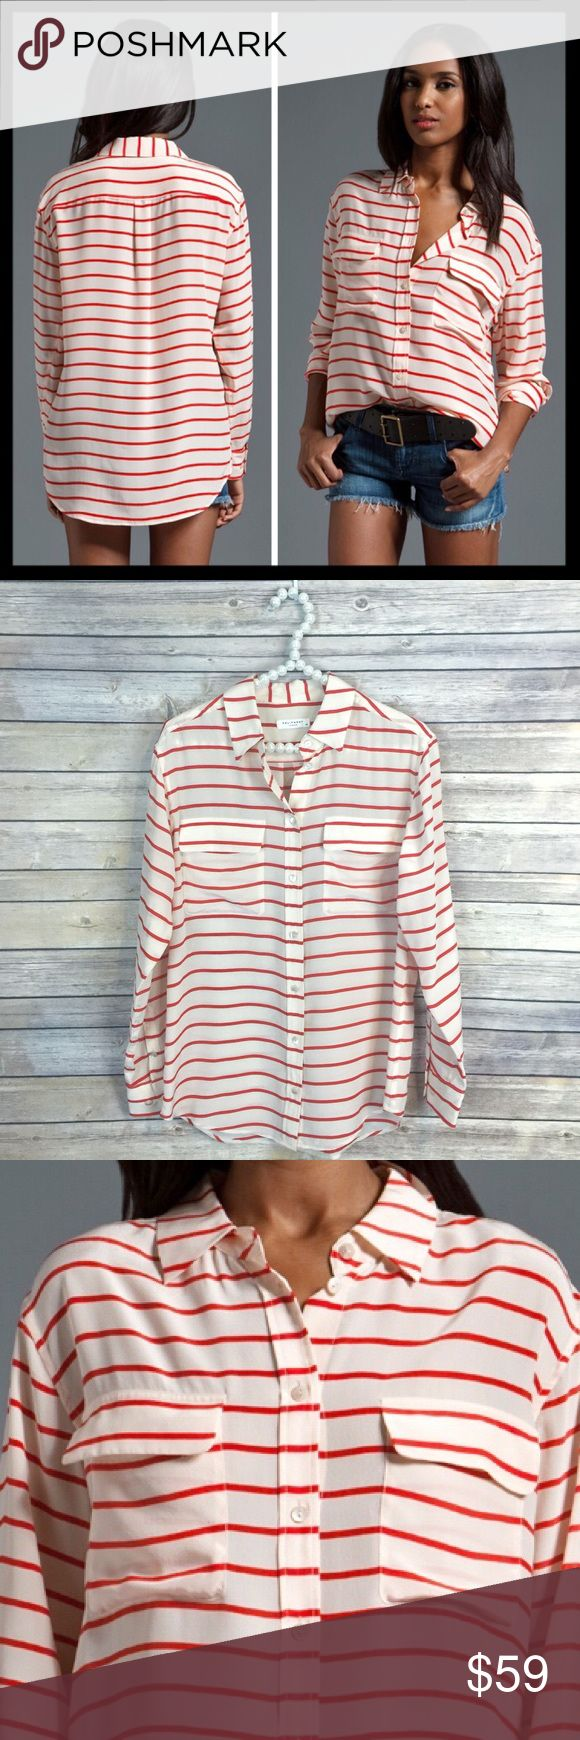 equipment // north sails stripe 100% silk blouse This signature silk boyfriend blouse by Equipment has a nautical yet polished vibe. It has the classic drape and silhouette that we have come to love. 100% silk. Fiery red and fawn colorway. Only worn once and in excellent condition. Equipment Tops Blouses